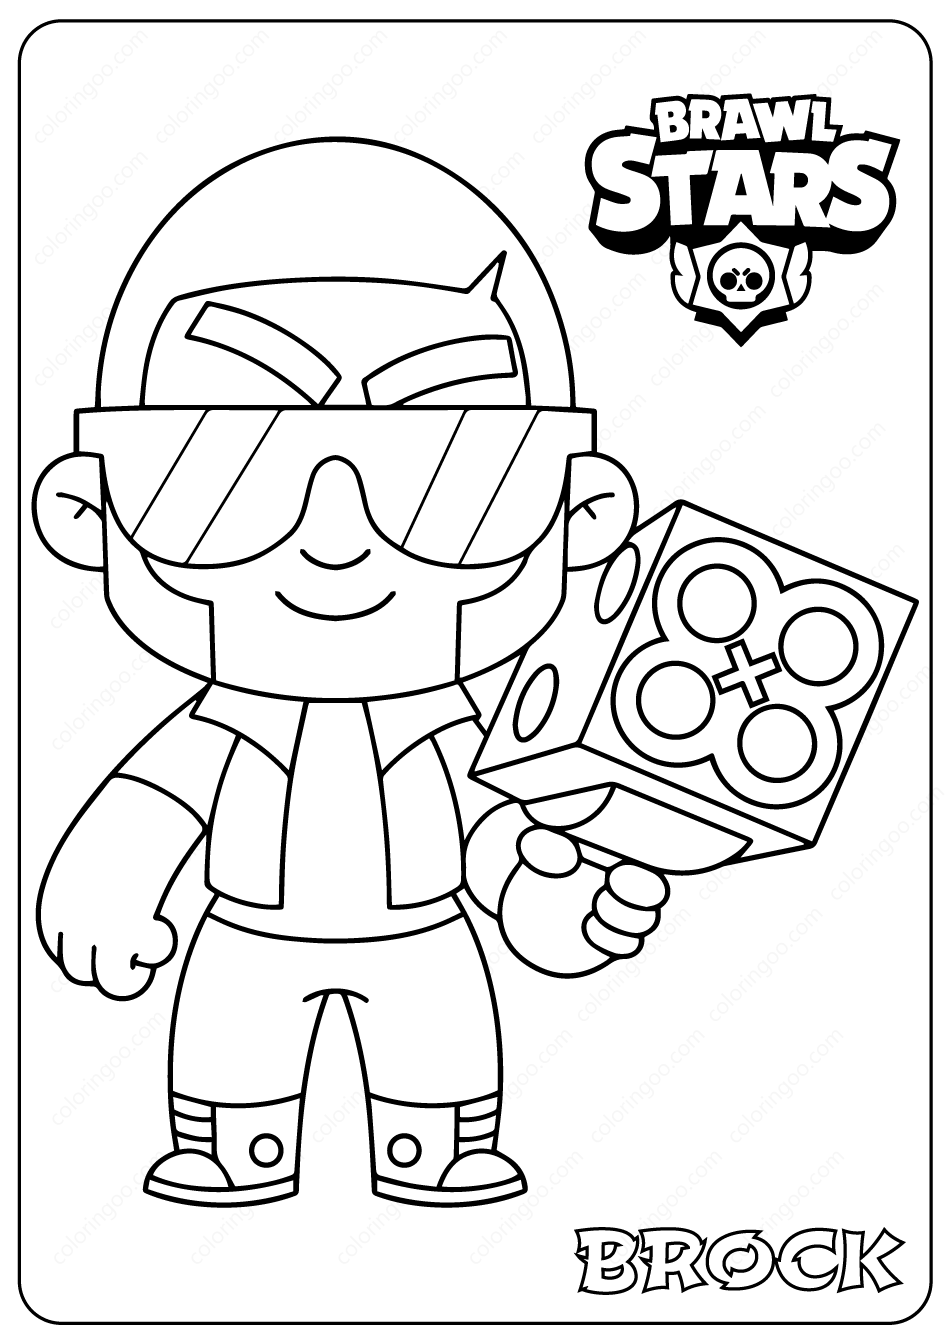 Shark Leon High Quality Free Coloring Page From The Category Brawl Stars More Printable Pictures On Ou Coloriage Coloriage Pokemon A Imprimer Dessin Mickey